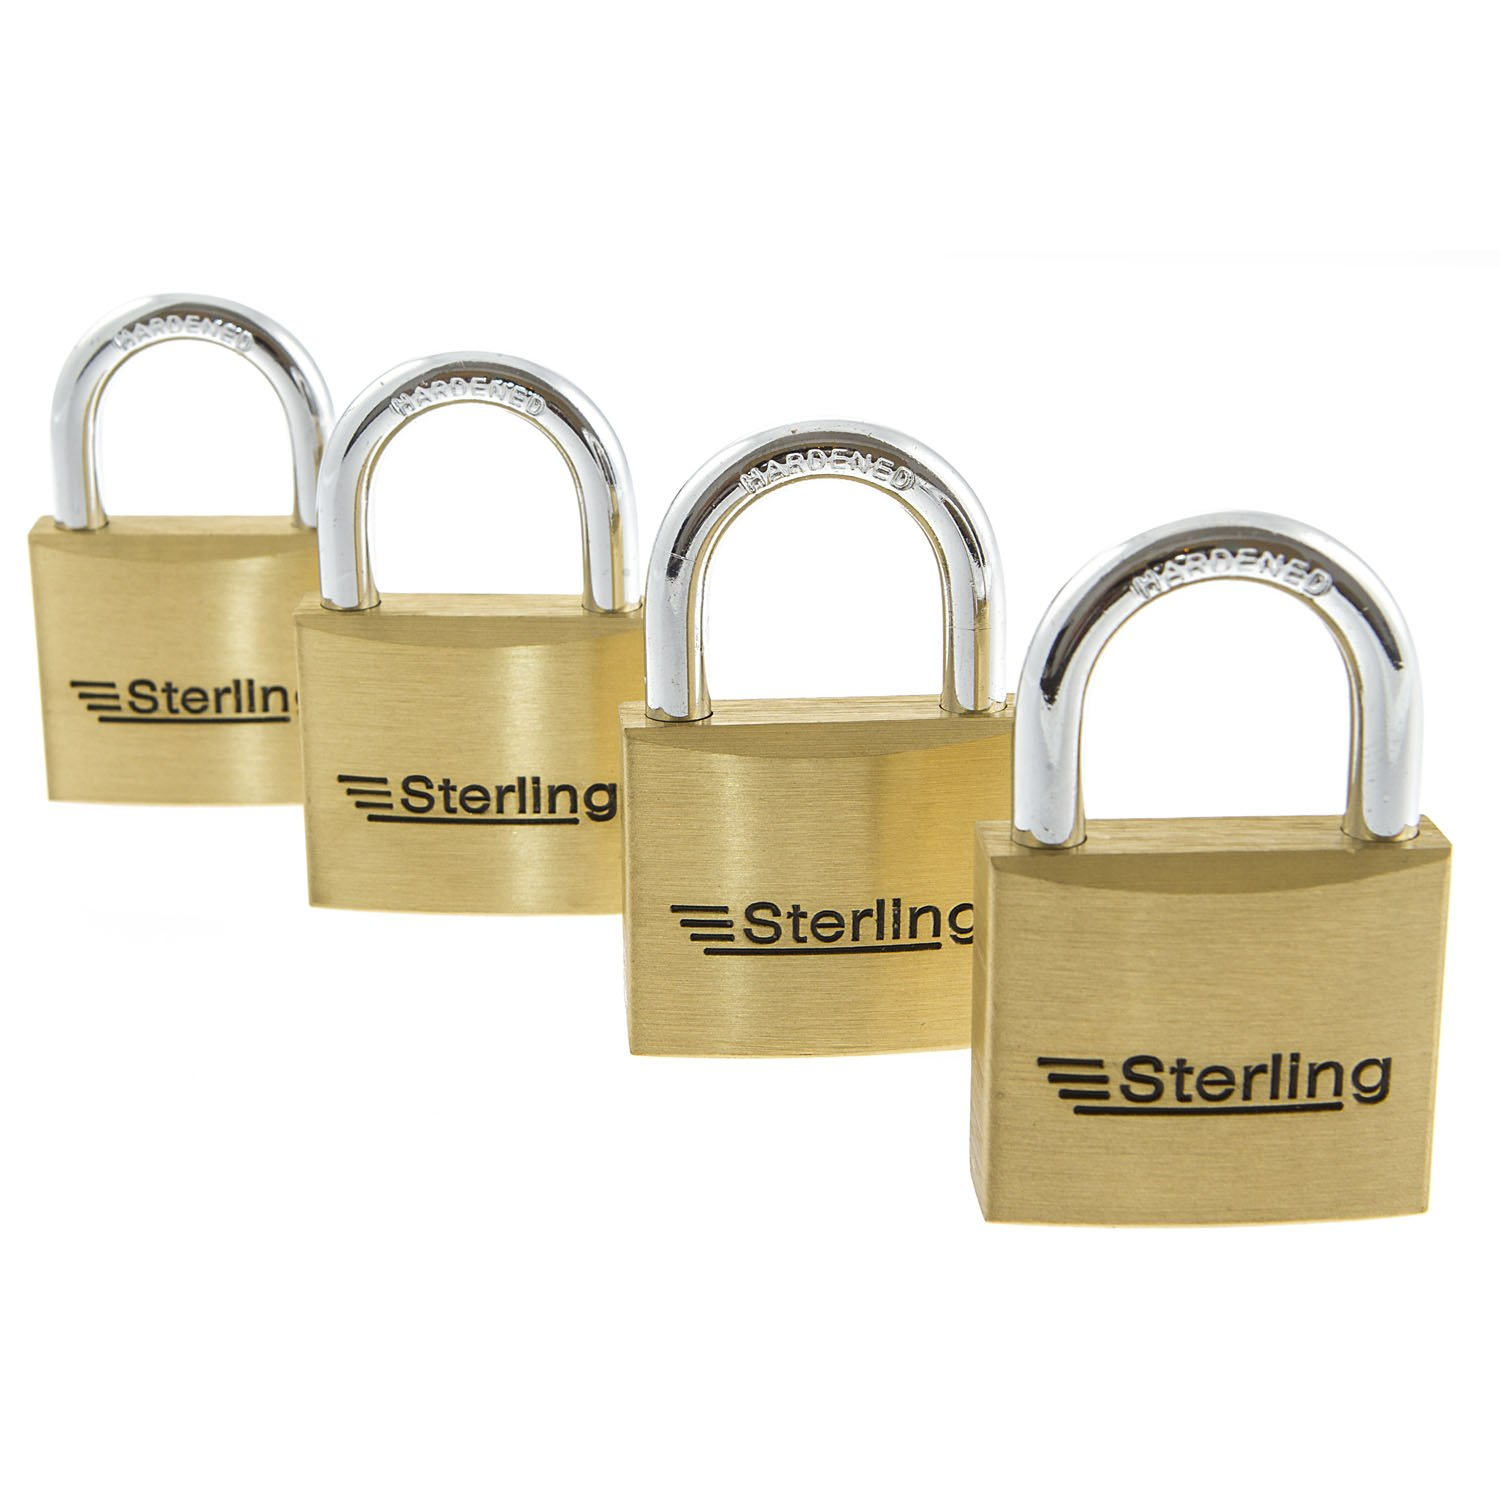 New Cheapest On 4 Dial Sterling 40mm Brass Combination Padlock